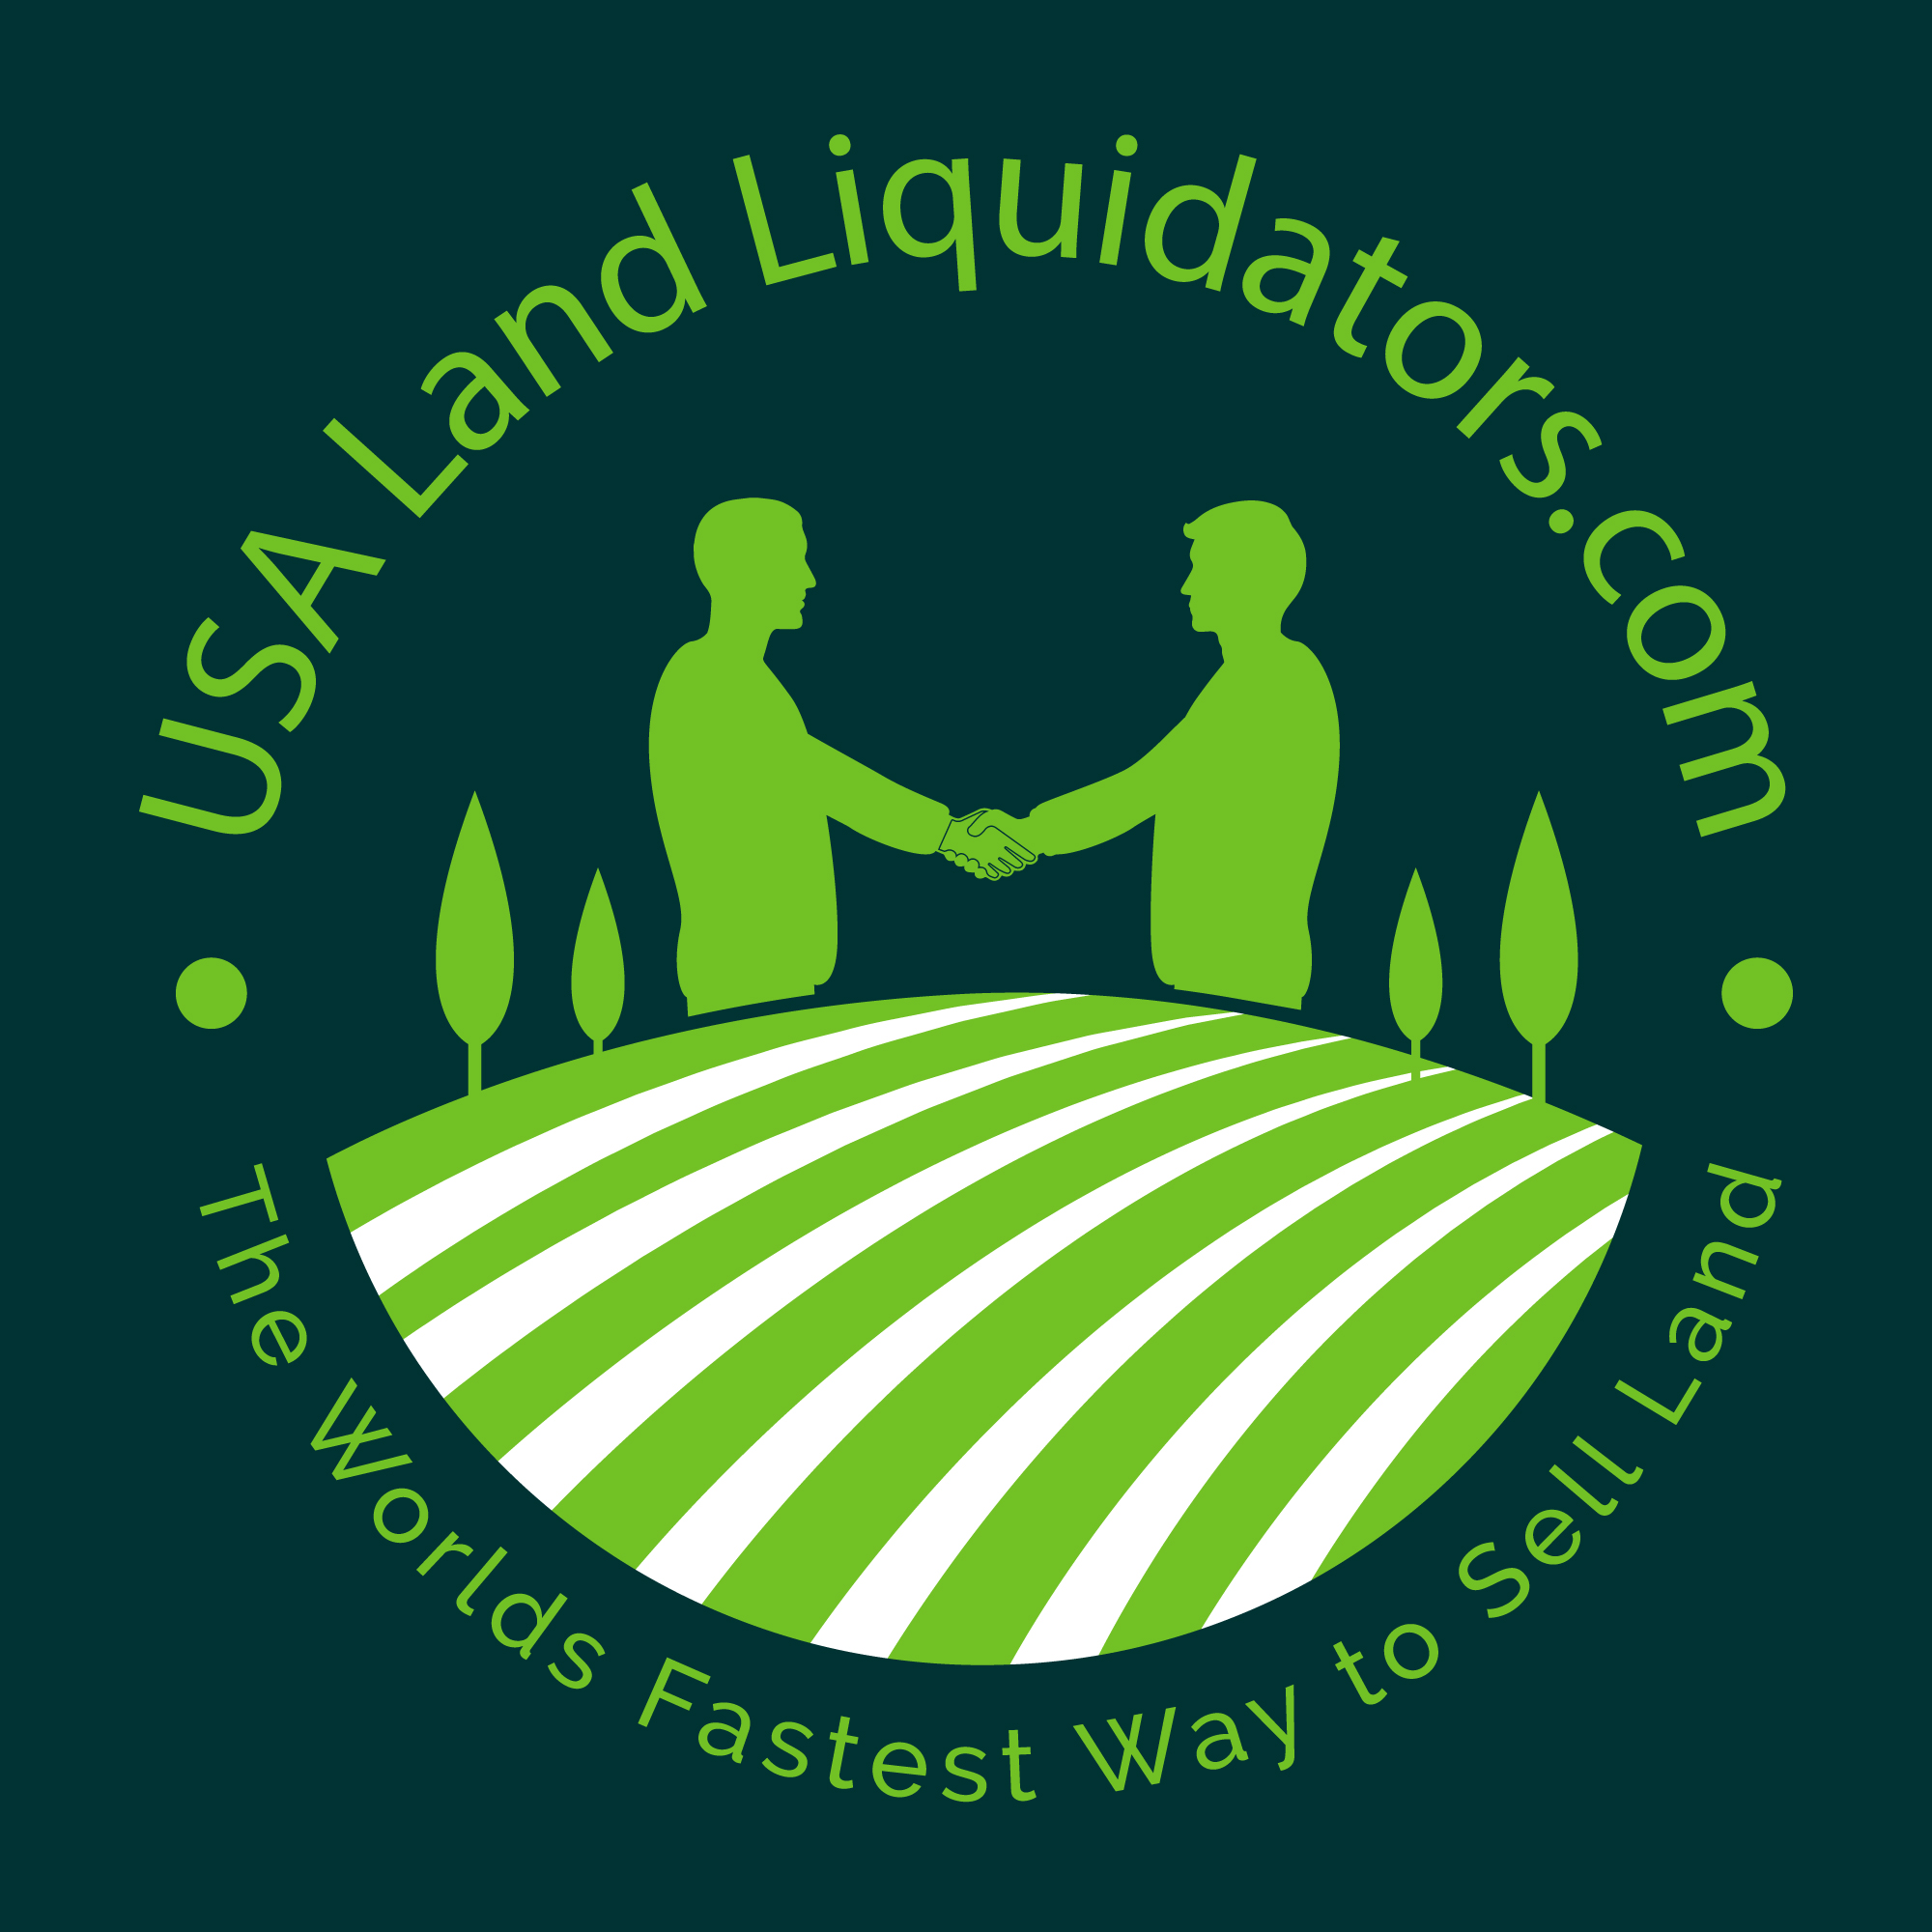 USA Land Liquidators